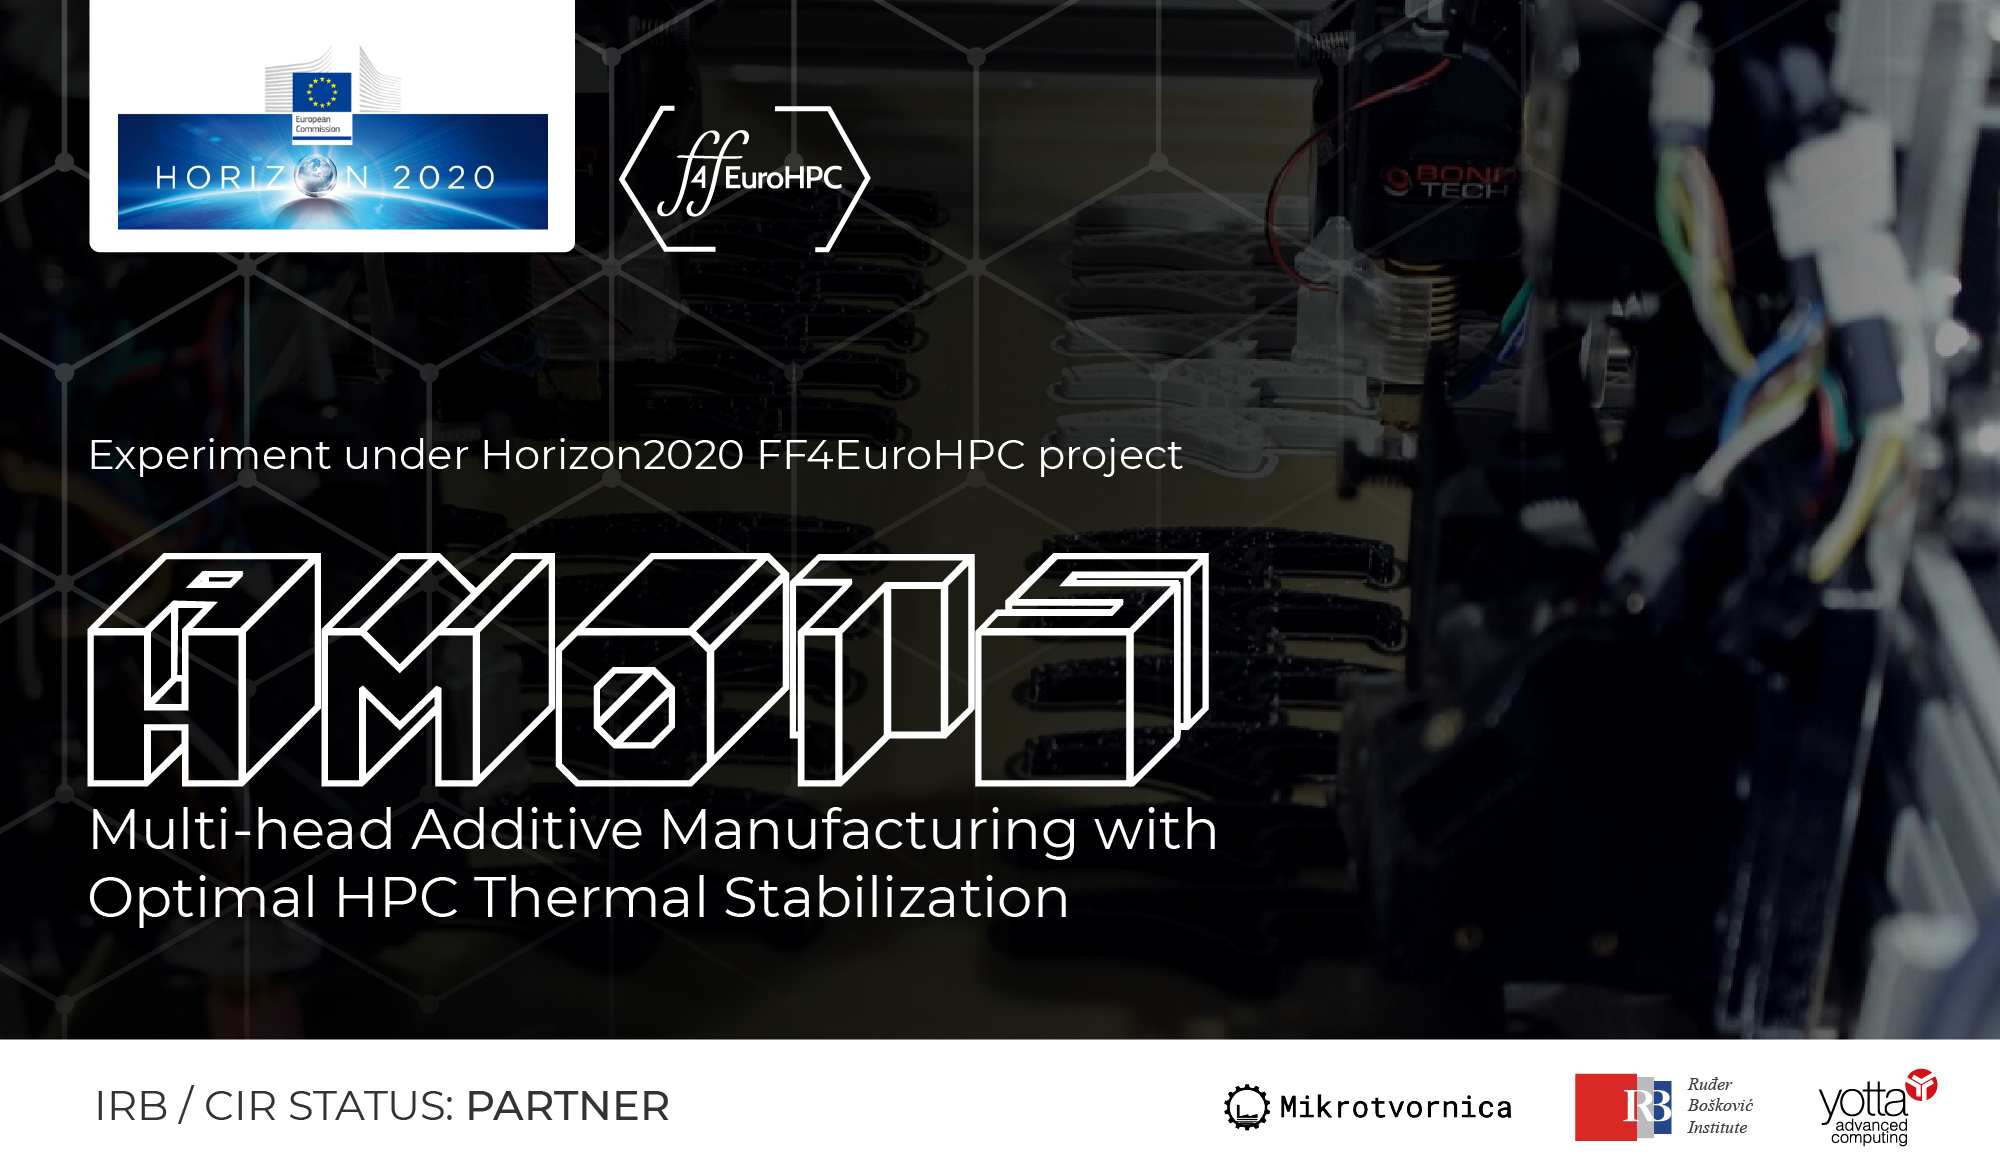 """AMOTS (""""Multi-head Additive Manufacturing with Optimal HPC Thermal Stabilization"""" experiment under FF4EuroHPC project)"""